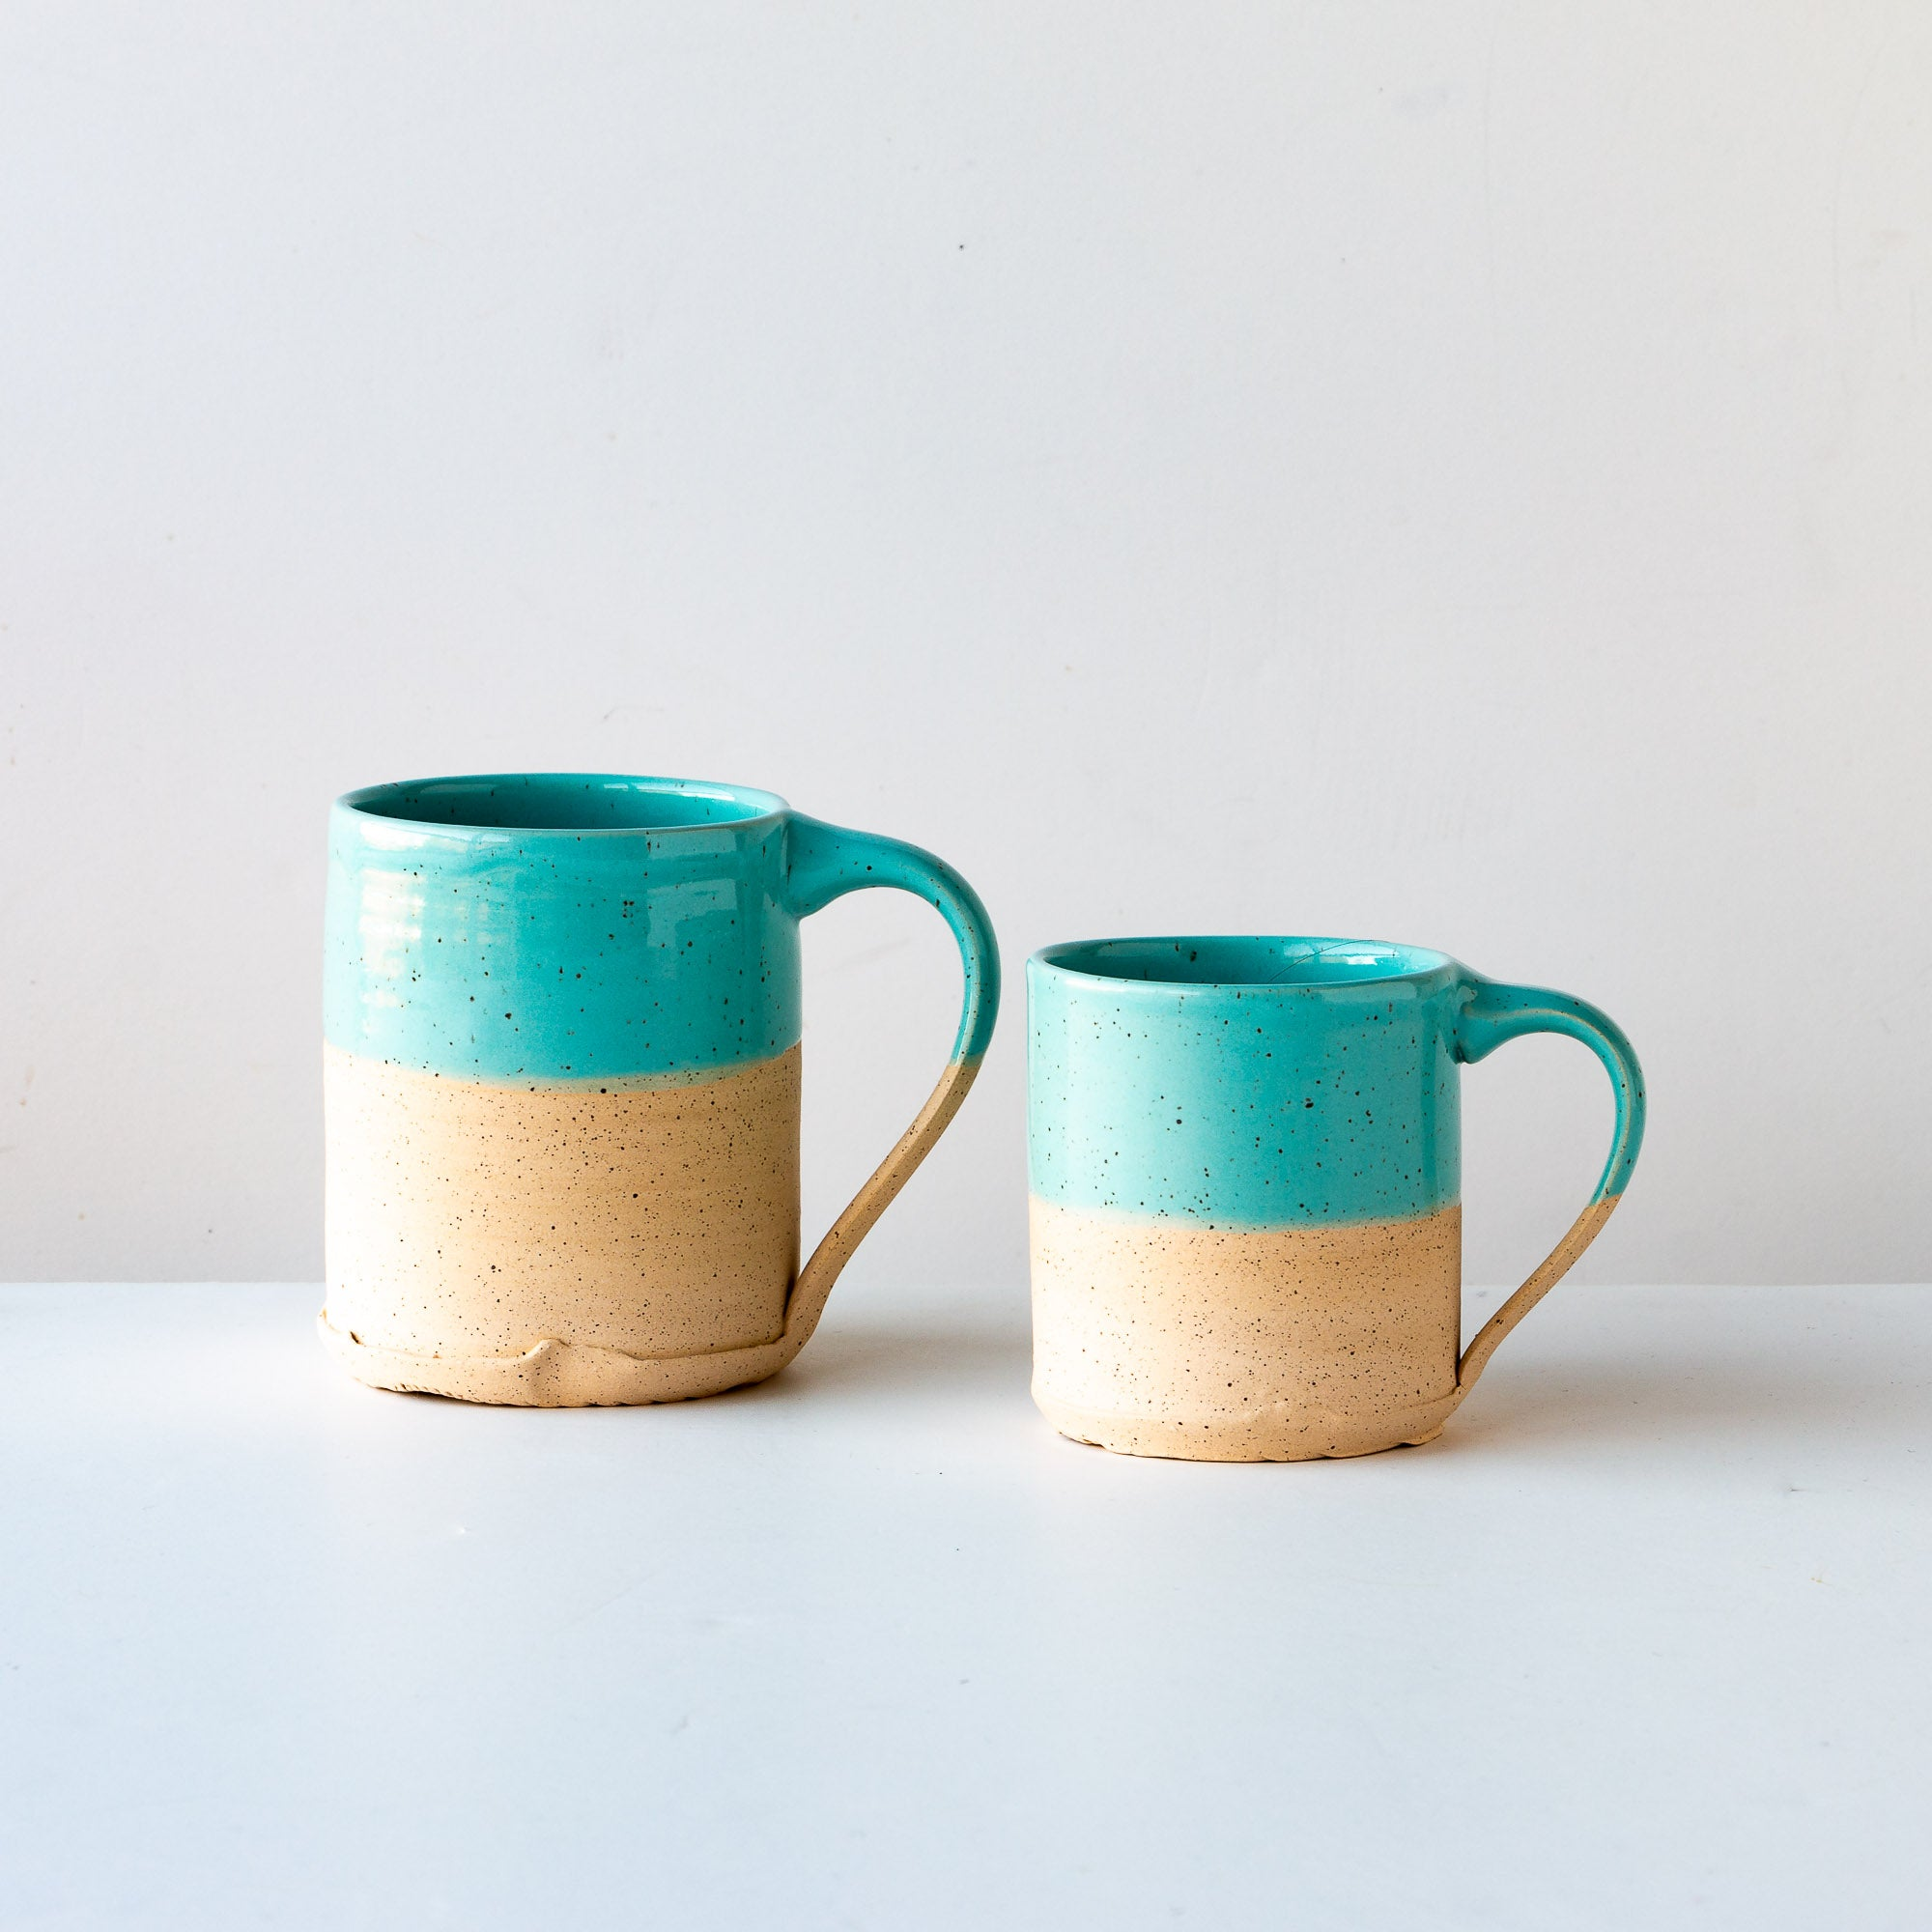 Turquoise Glaze - Handcrafted Speckled Stoneware Large Mug / Small Mug - Sold by Chic & Basta